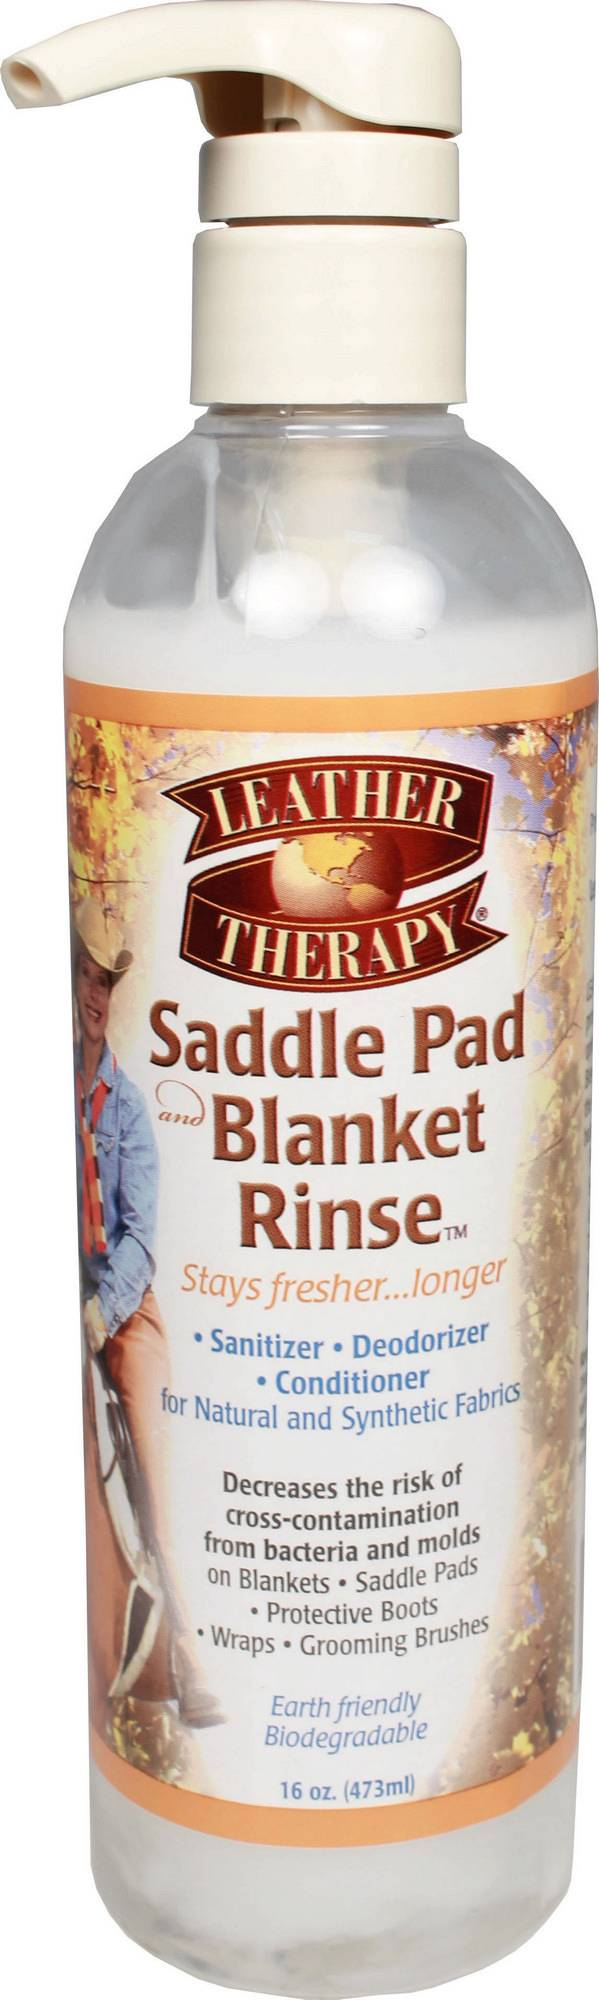 Leather Therapy Saddle Pad And Blanket Rinse - 16 Oz.